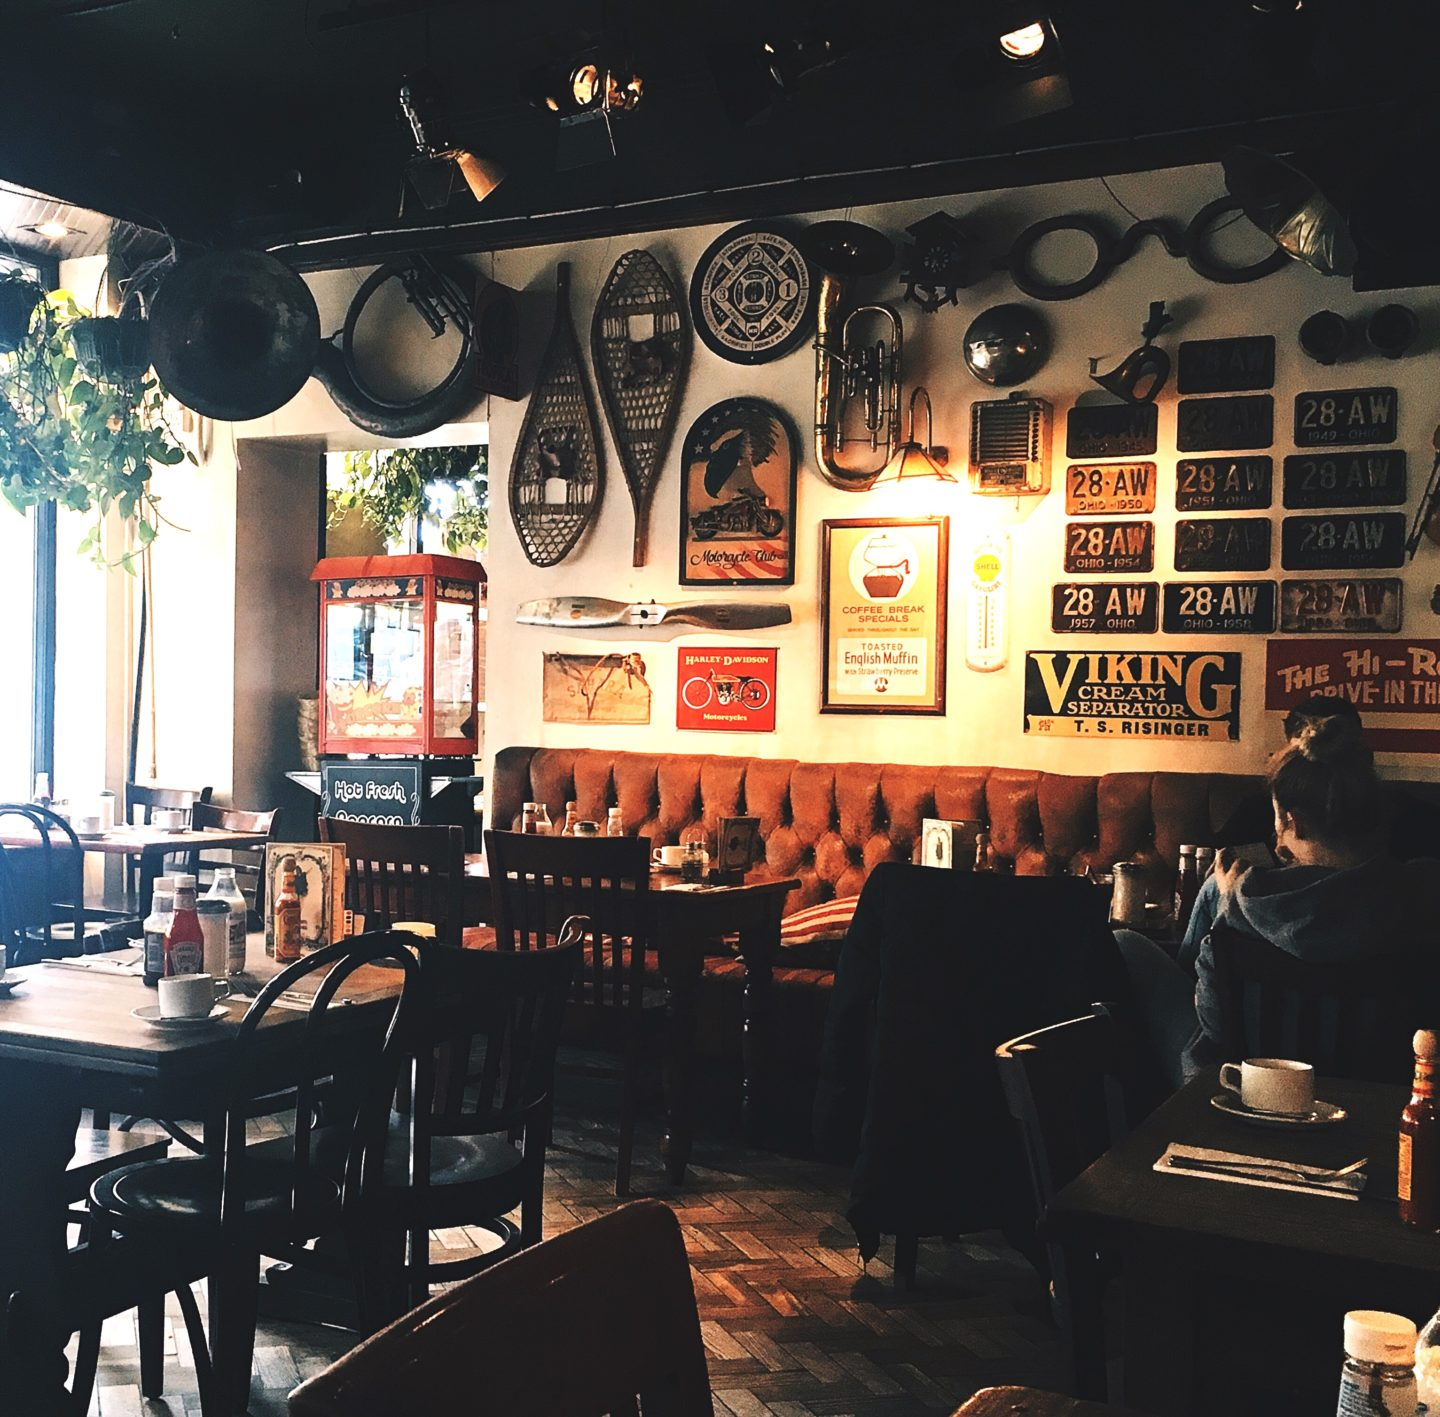 Inside The Tavern Co., Liverpool